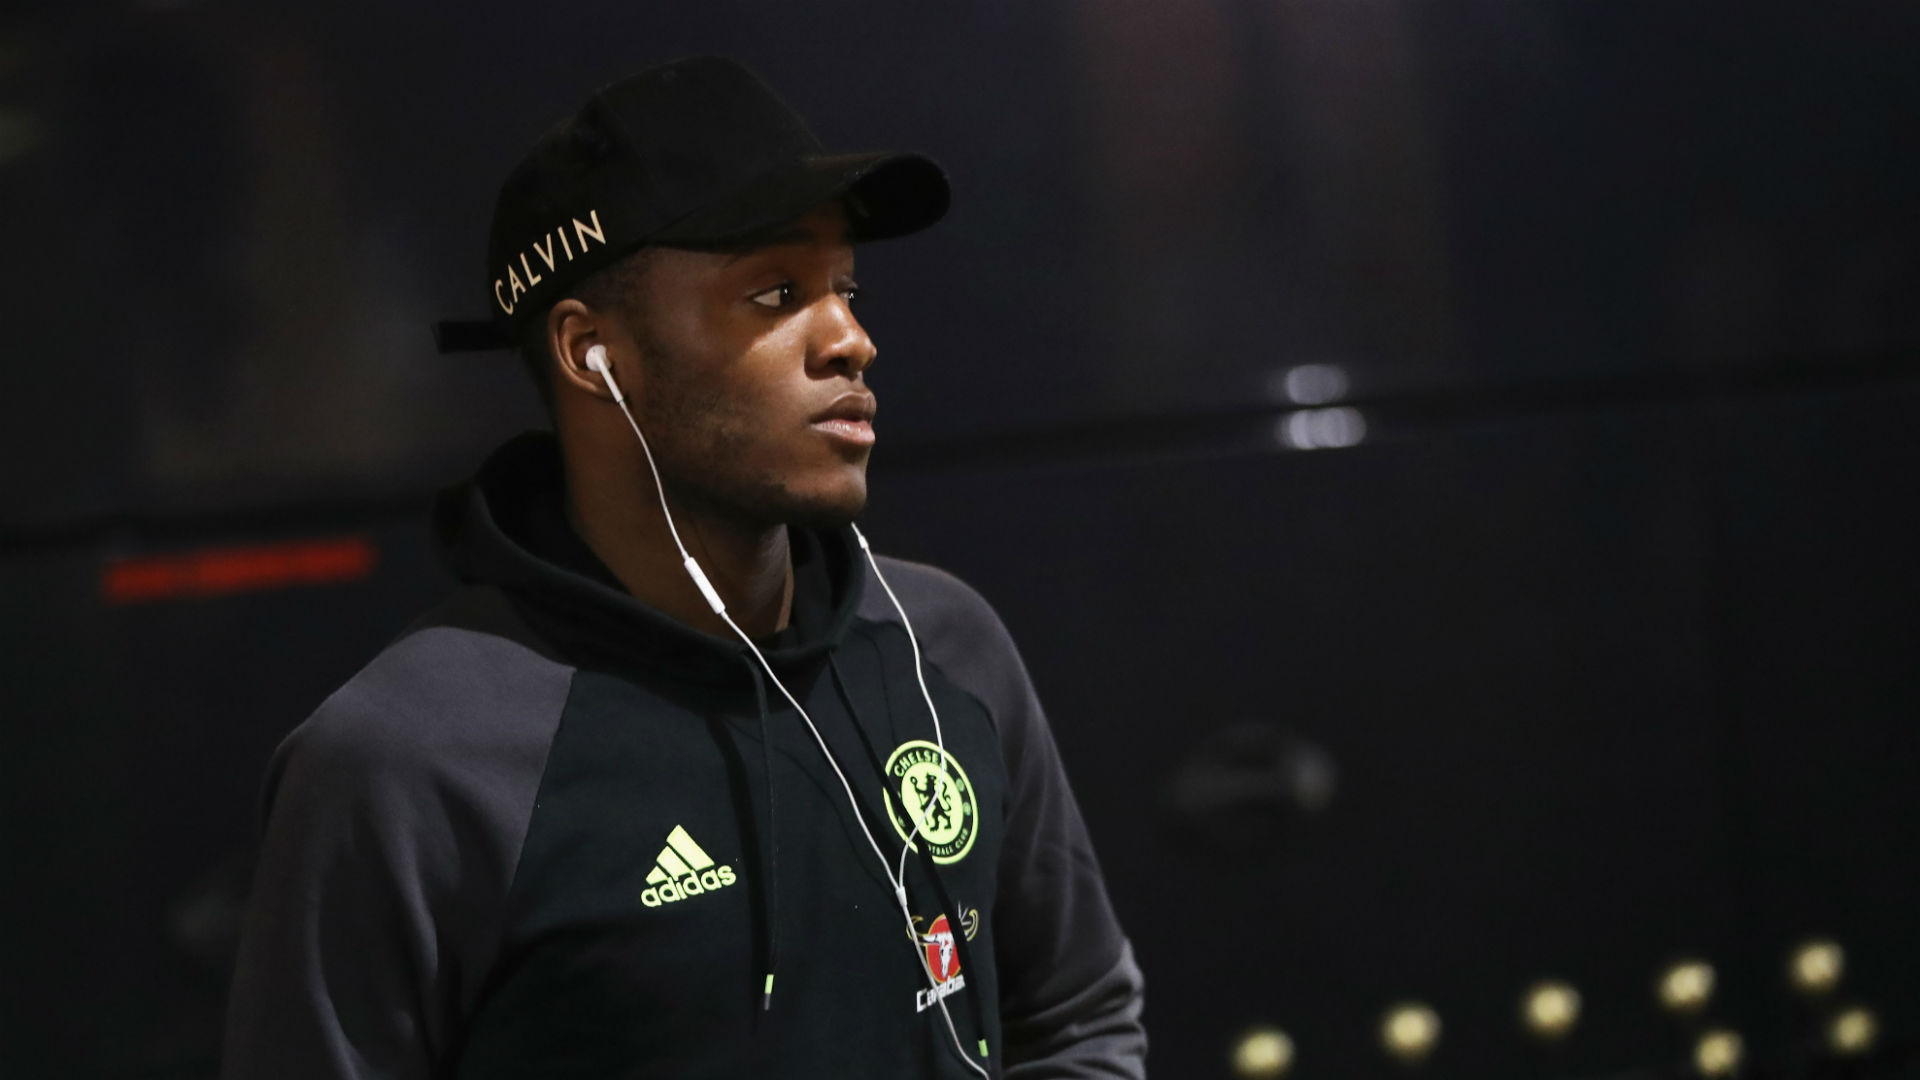 Michy Batshuayi staying put despite first-team absence, insists Antonio Conte